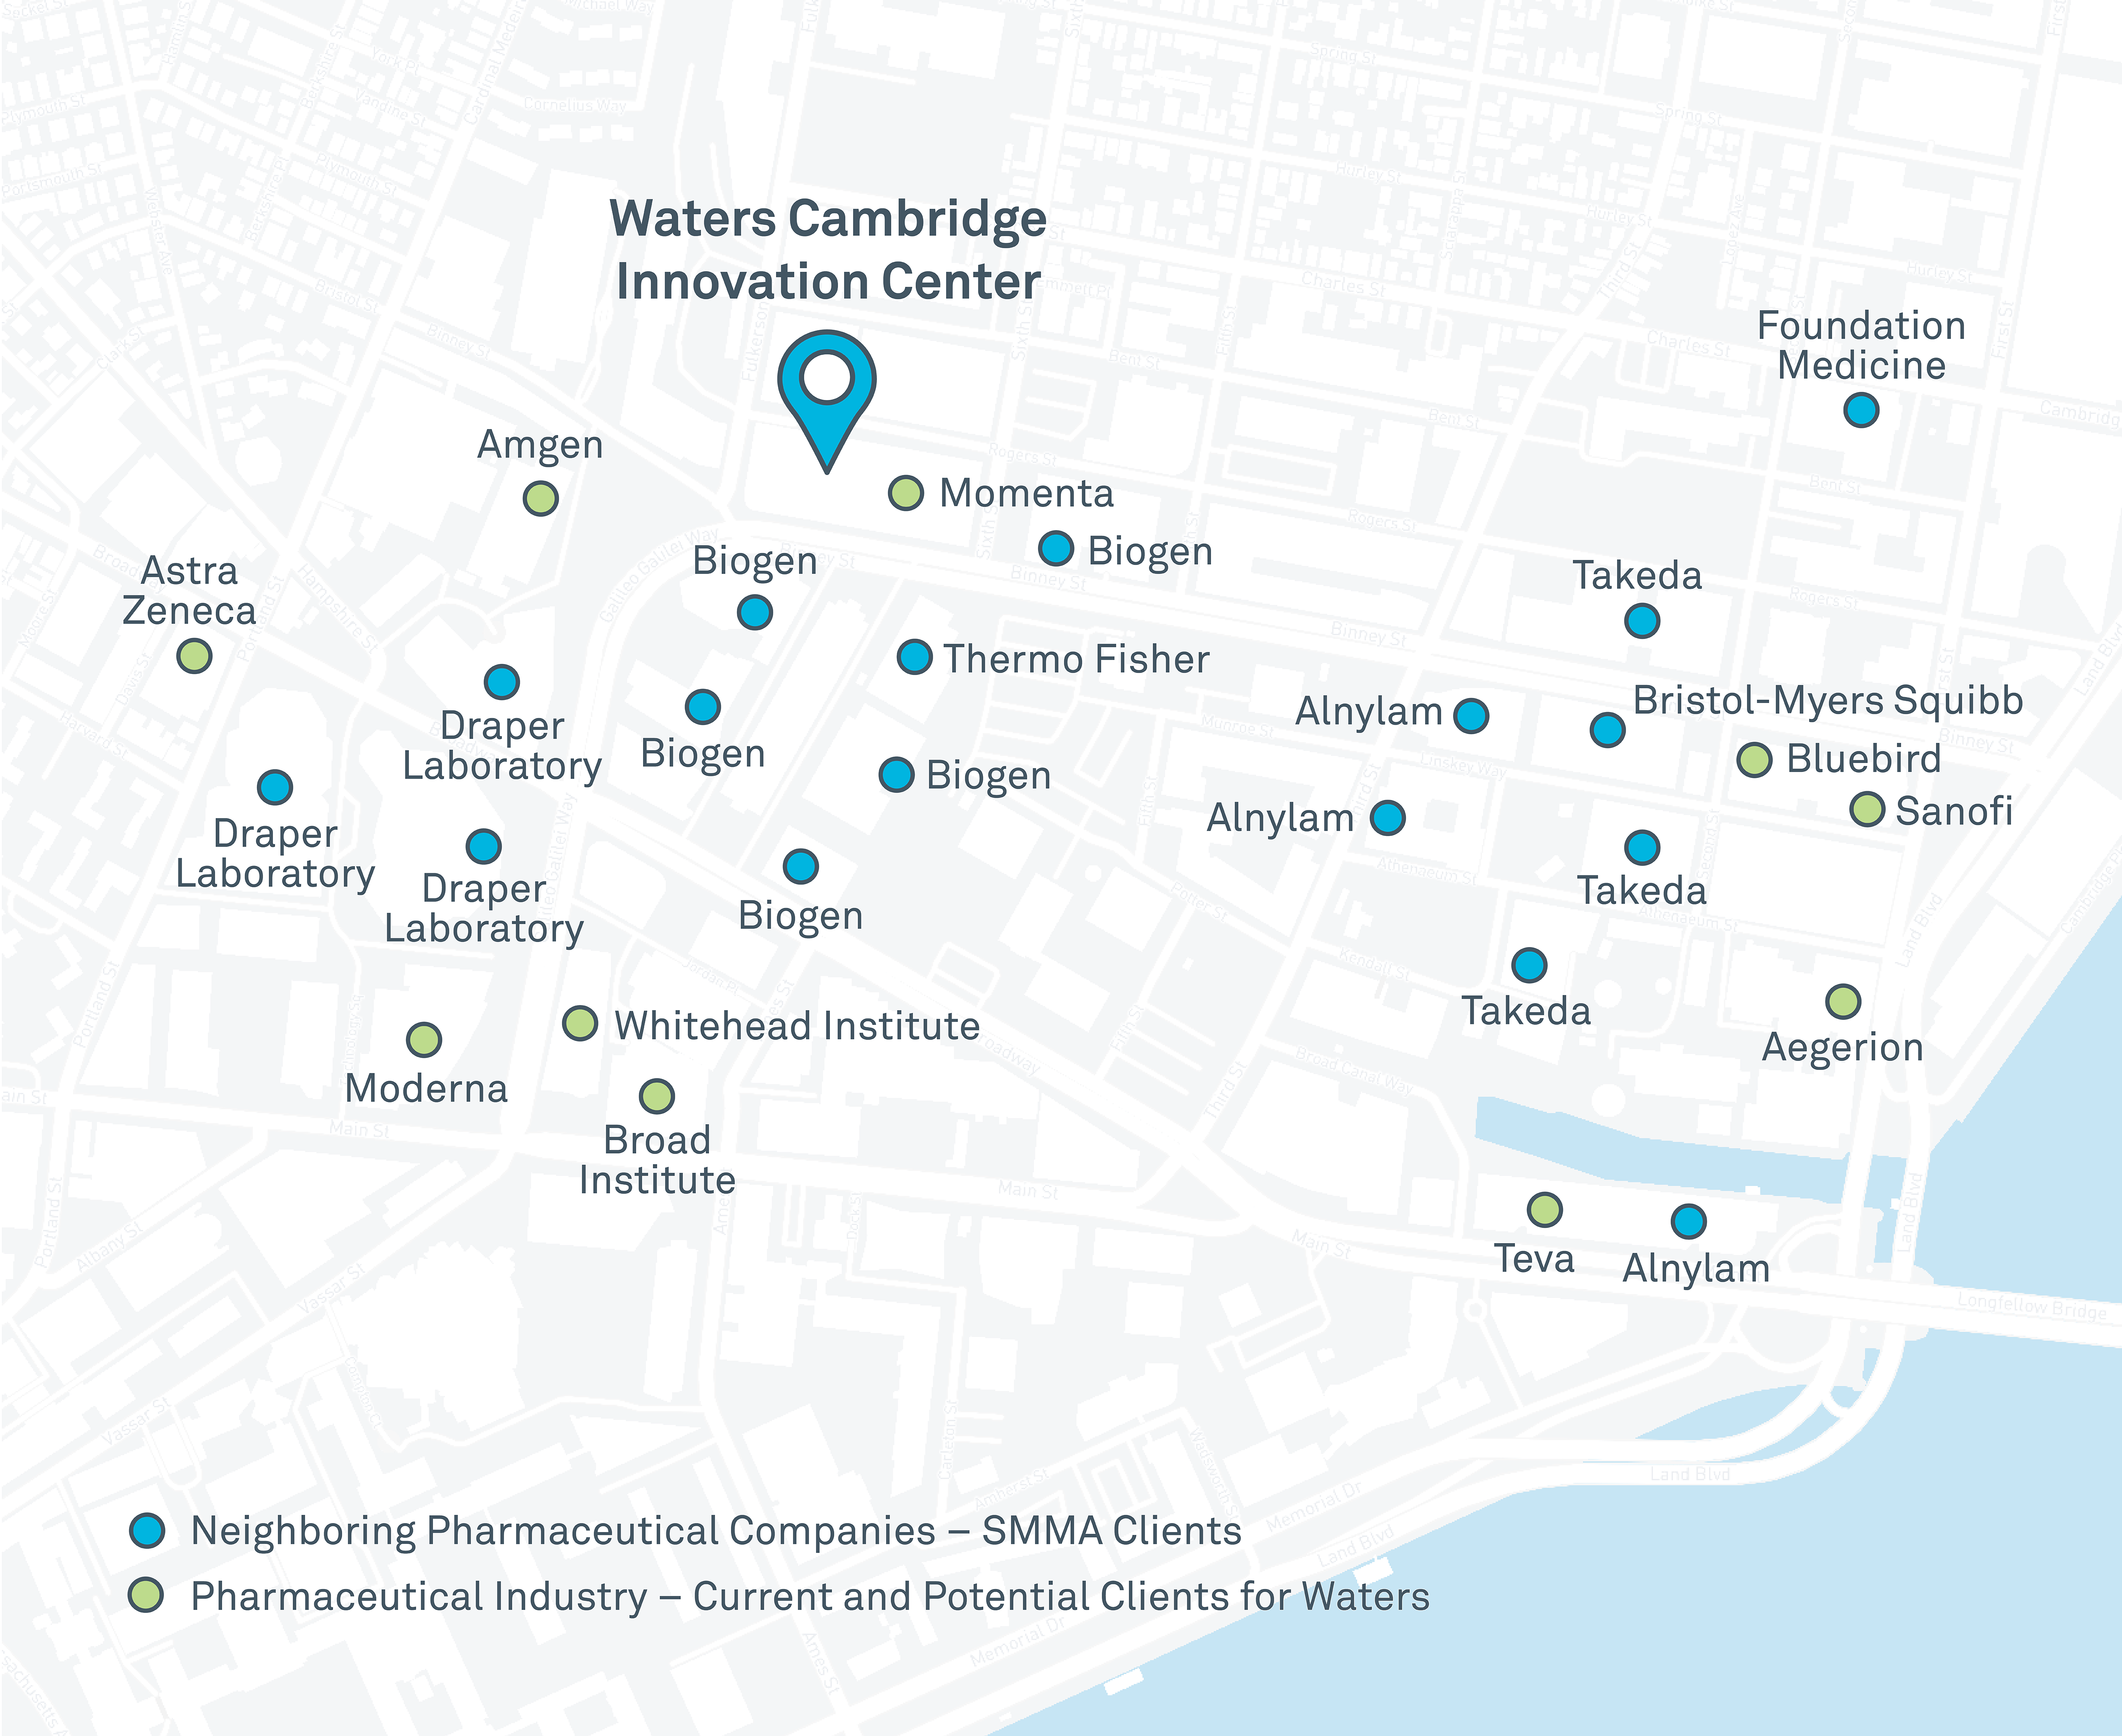 Waters Central Location and Neighbors